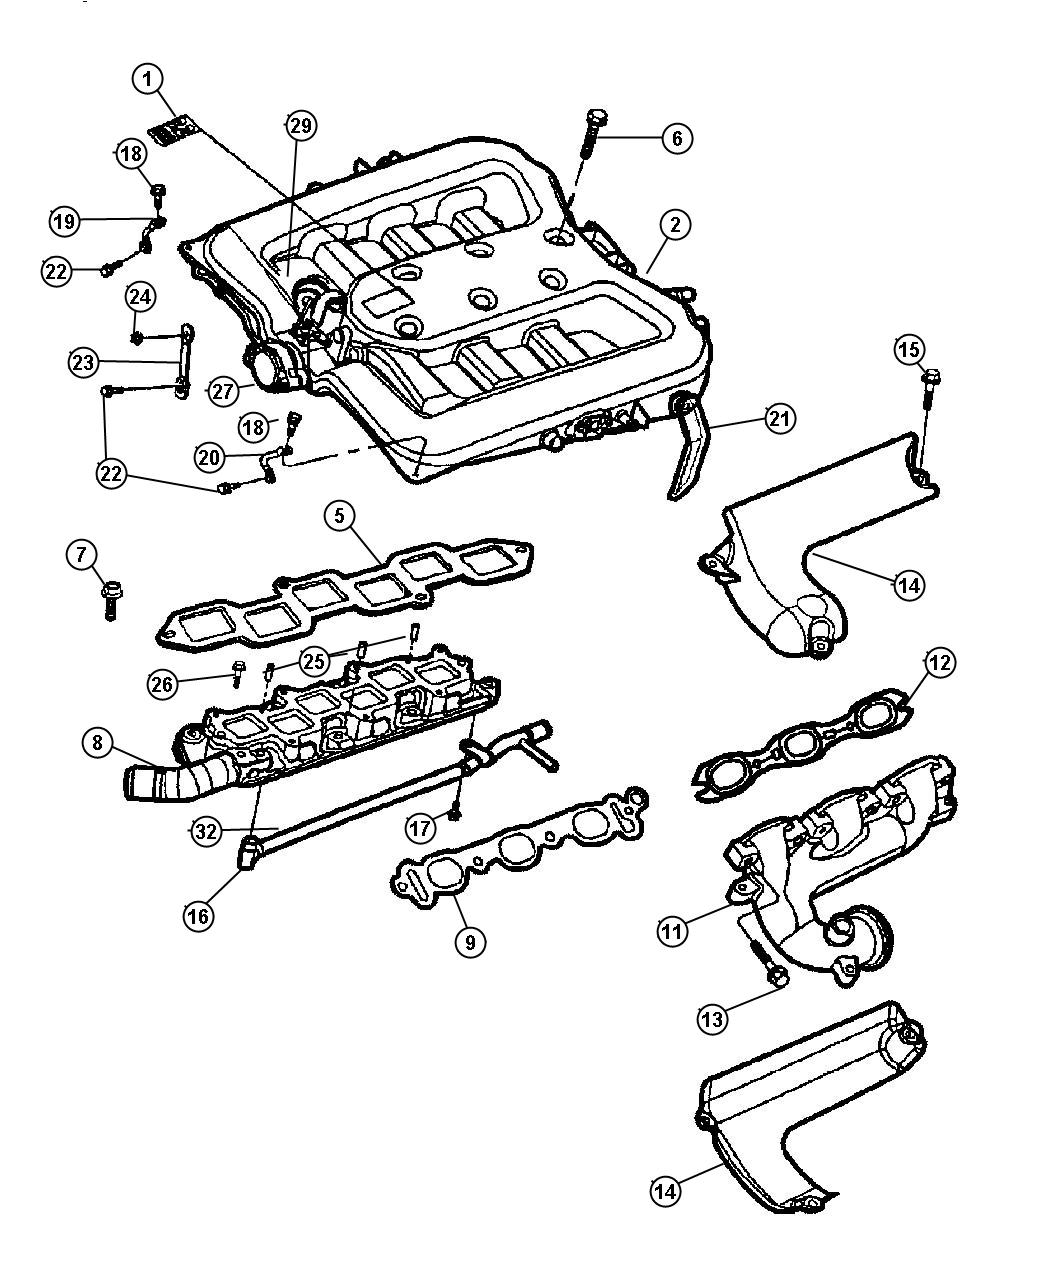 Chrysler 300 Actuator Manifold Tuning Valve Contains An